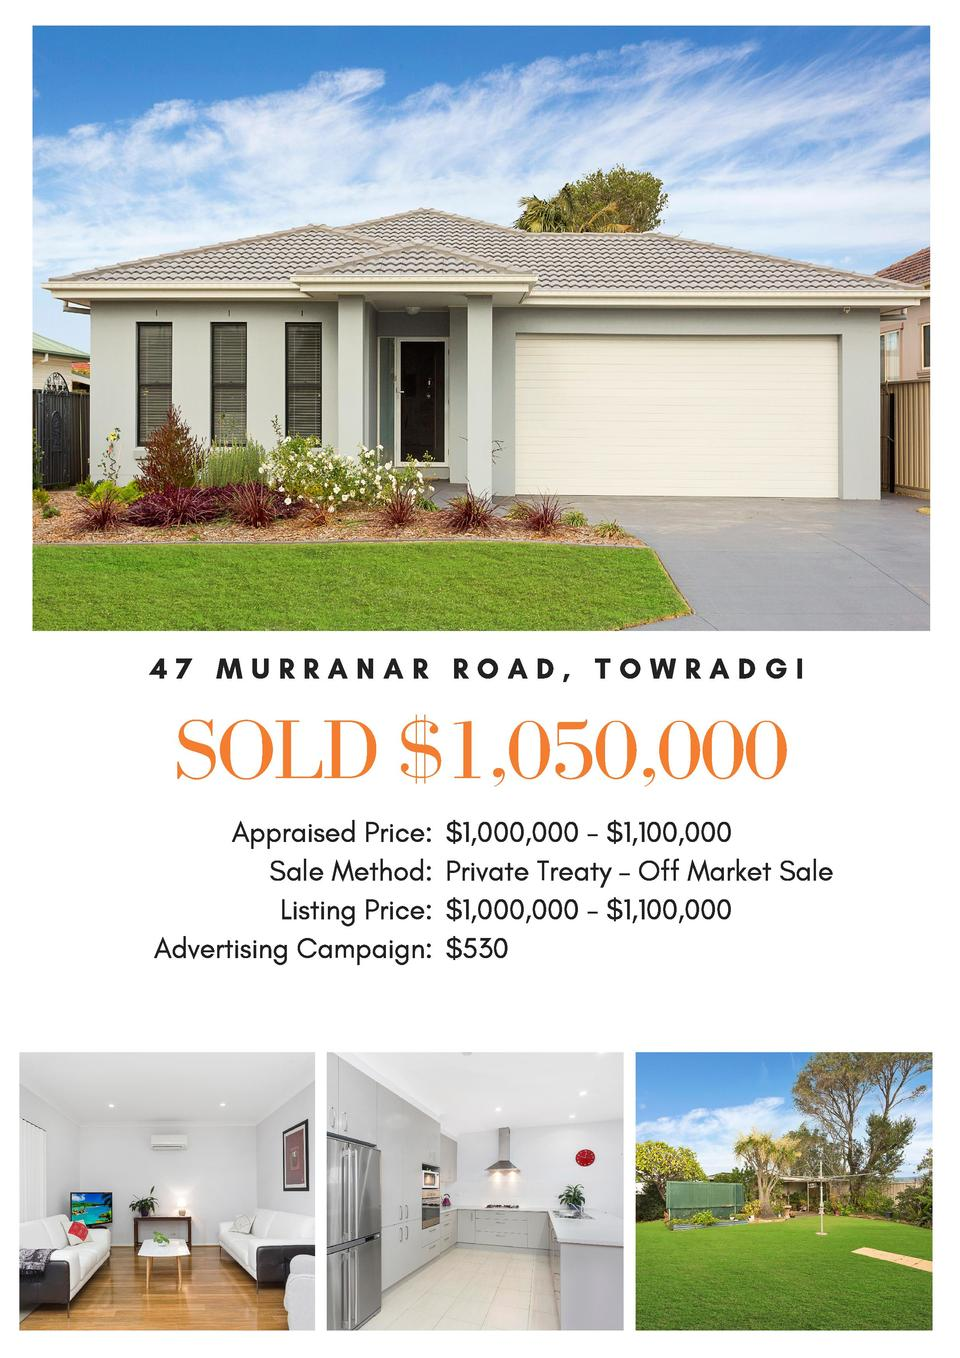 47 MURRANAR ROAD, TOWRADGI  SOLD  1,050,000 Appraised Price   1,000,000 -  1,100,000 Sale Method  Private Treaty     Off M...